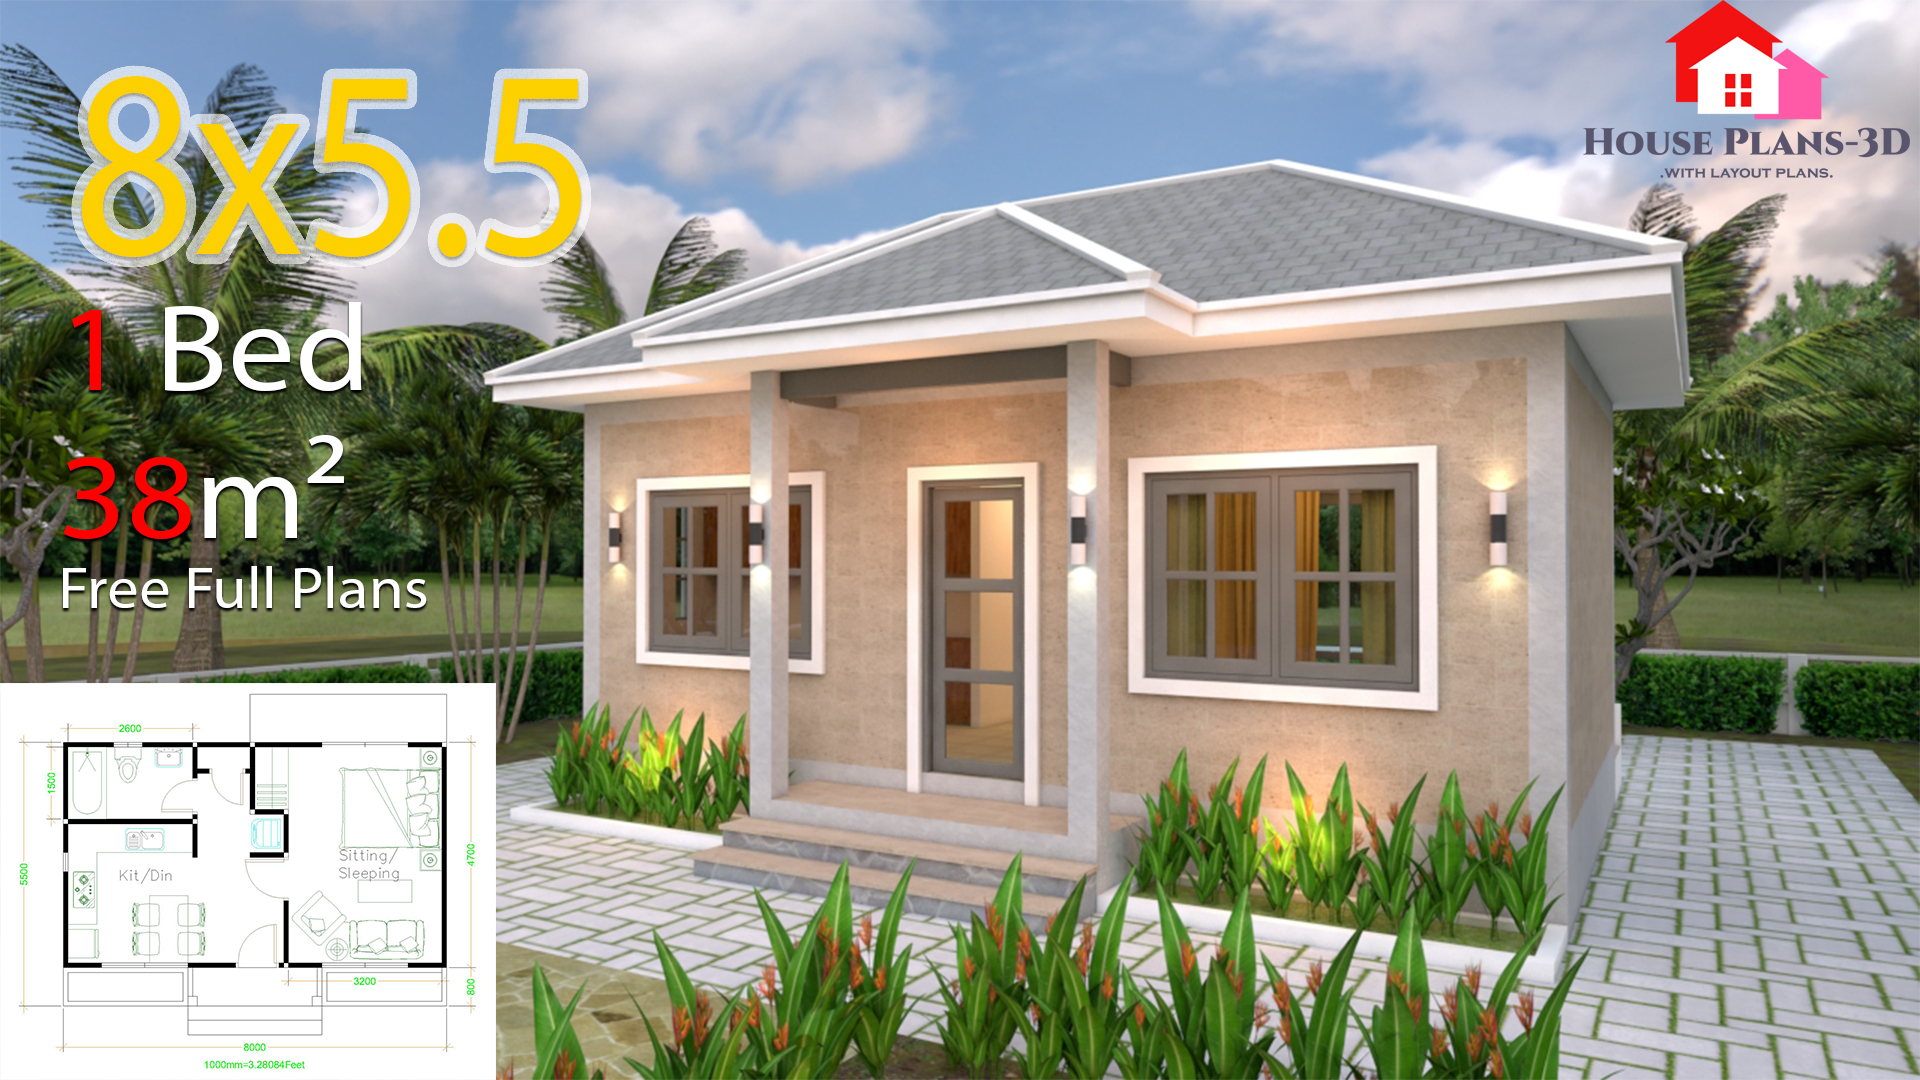 Small House Plans 8x5 5 With One Bedrooms Gross Hipped Roof Tiny House Plans